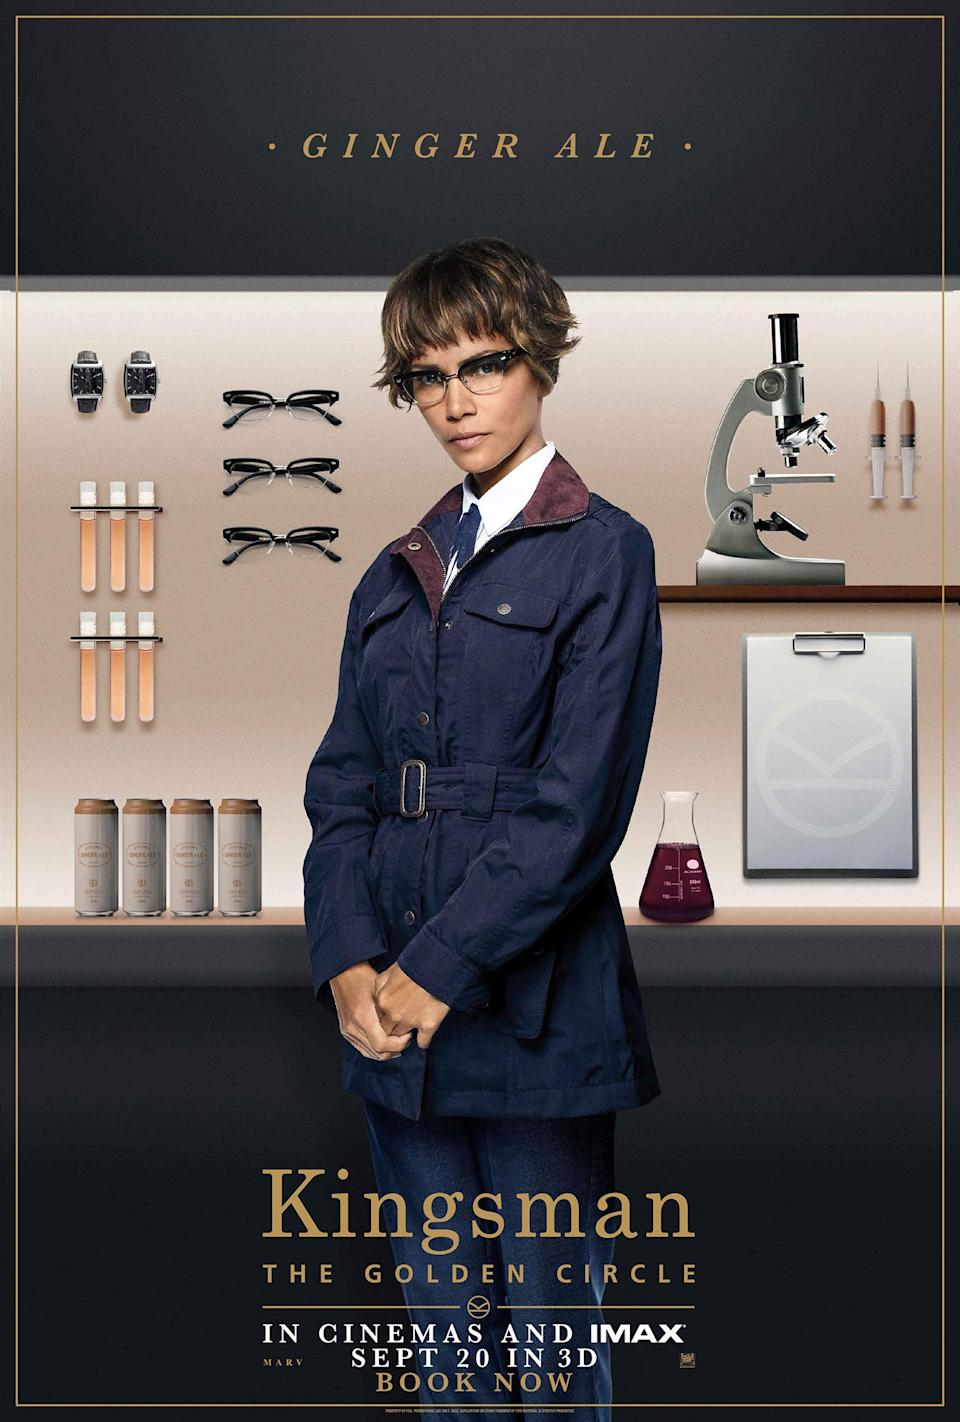 <p>Halle Berry as Ginger Ale (20th Century Fox) </p>